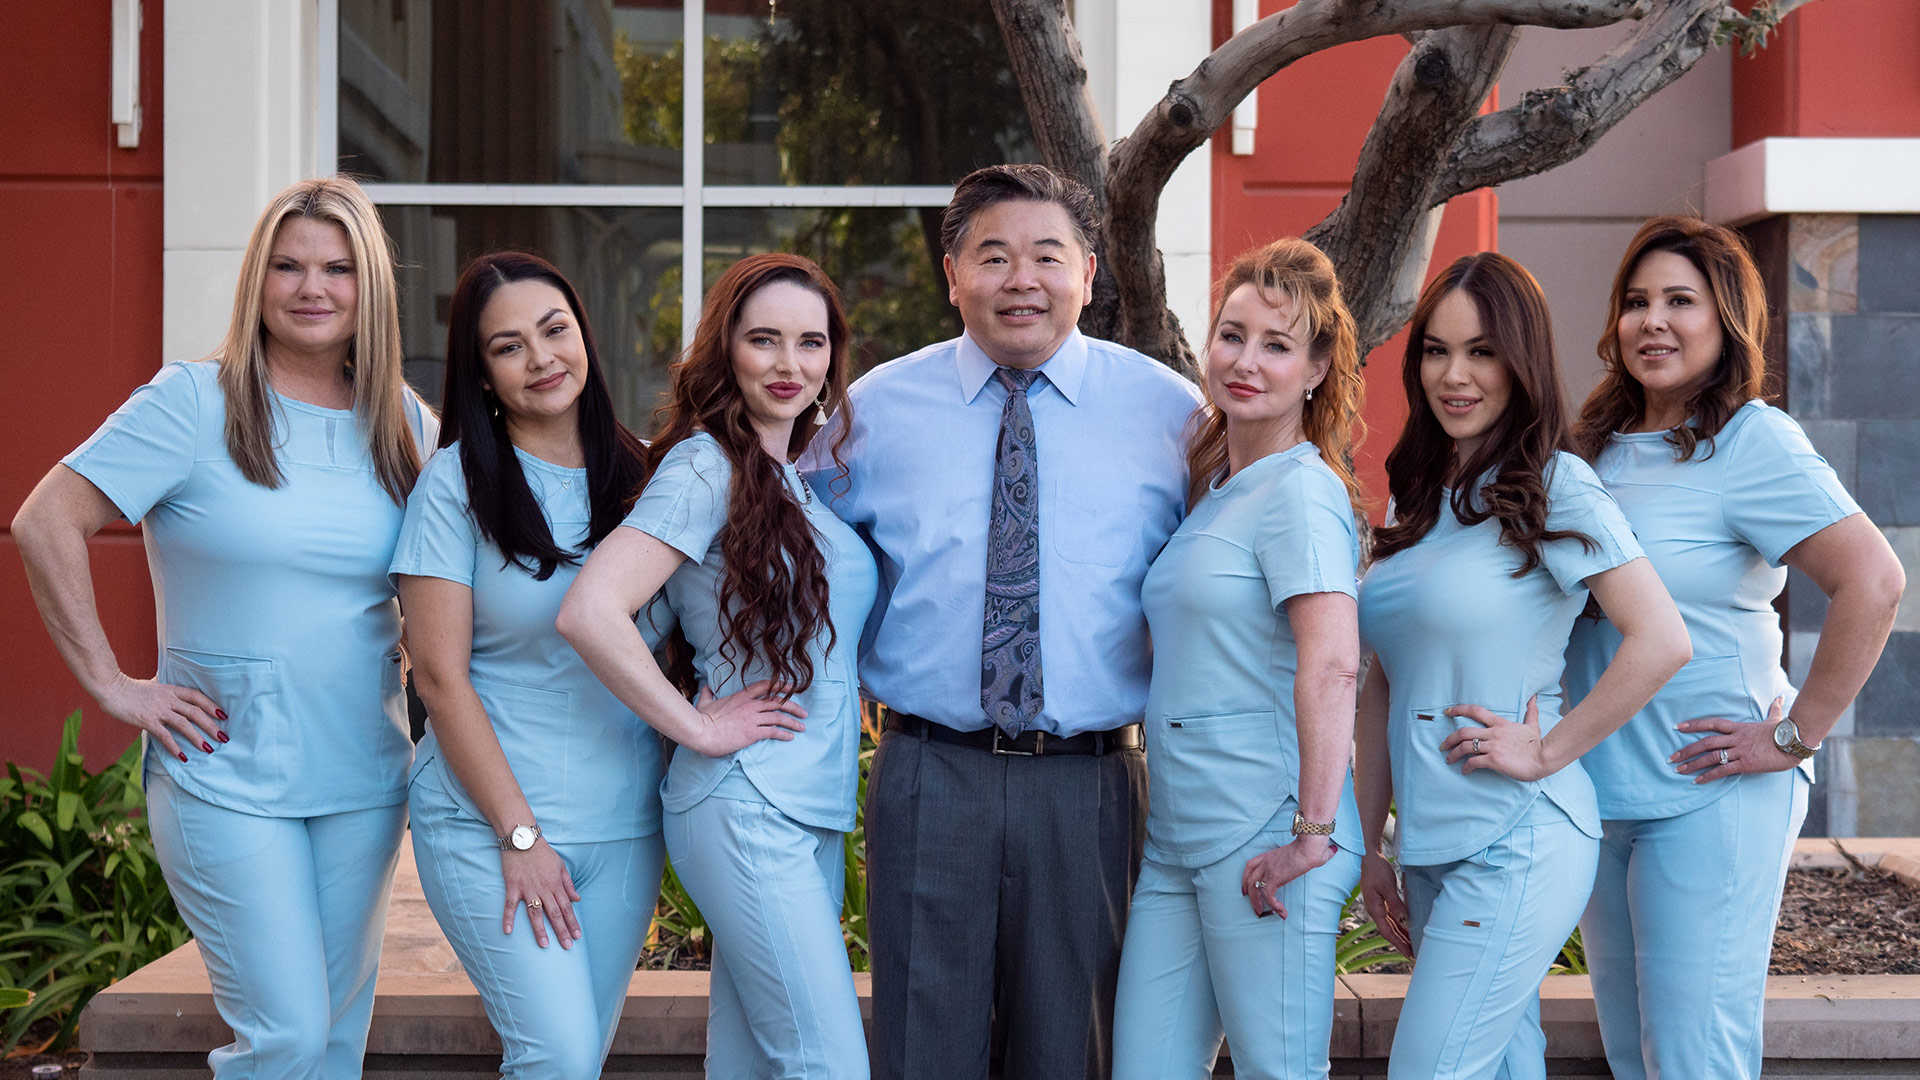 Dr Li's Staff in Ontario, CA